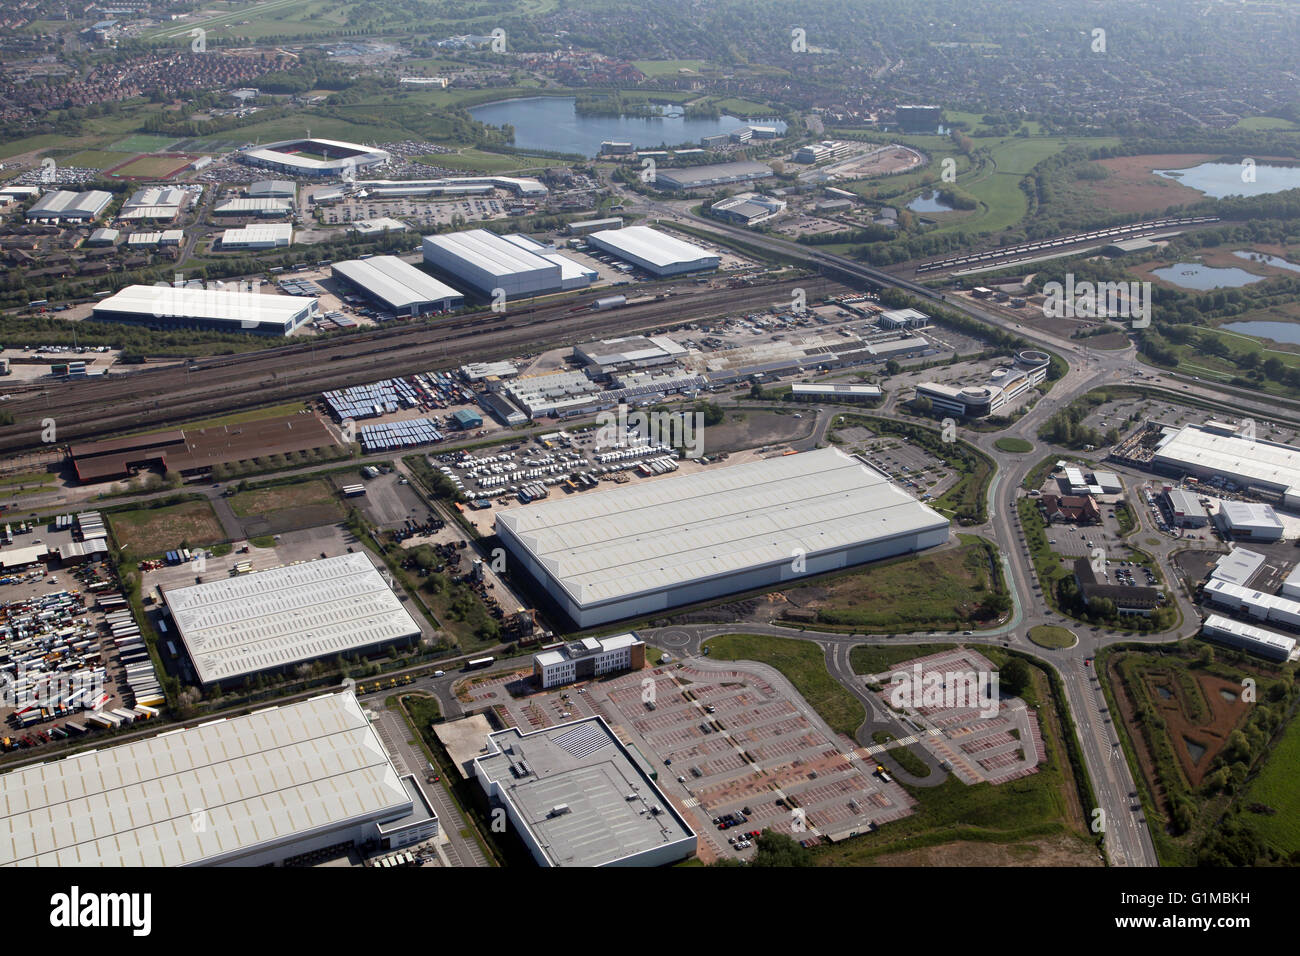 aerial view of Woodfield Way leading to A6182 White Rose Way, Balby Carr, Doncaster, UK - Stock Image